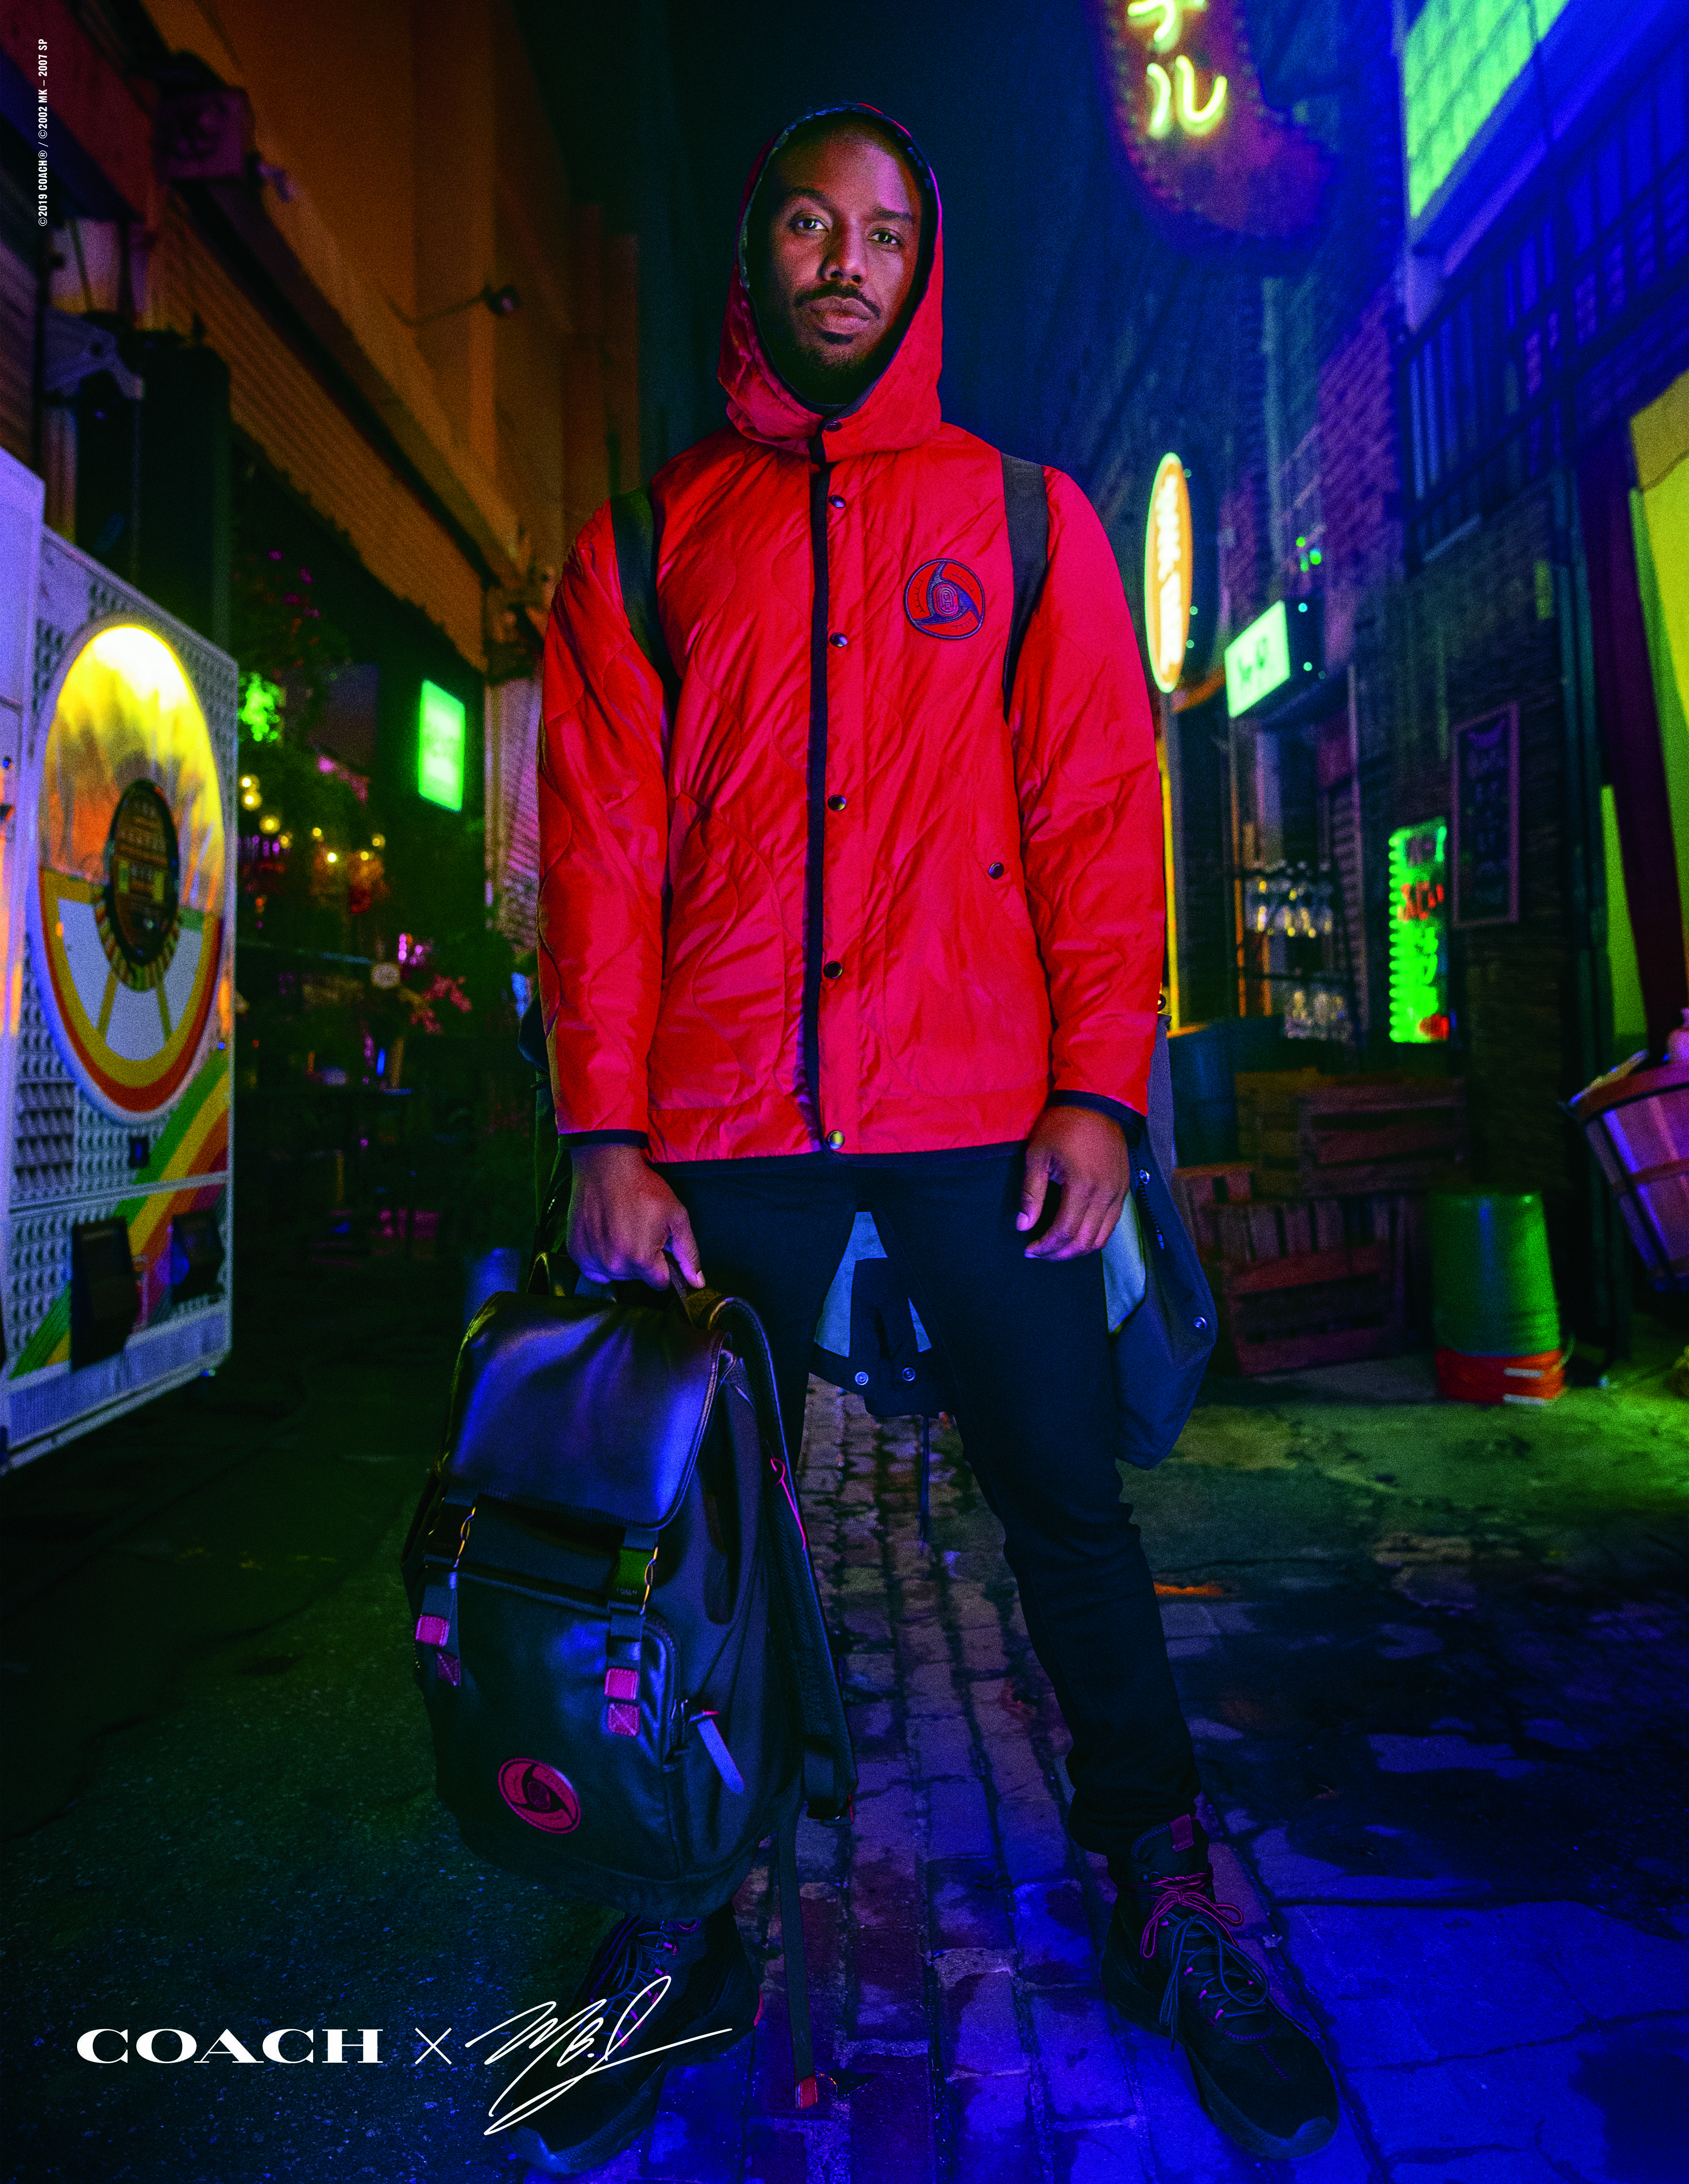 The Big Anime Trend Lives On In Michael B. Jordan's New Coach Collab